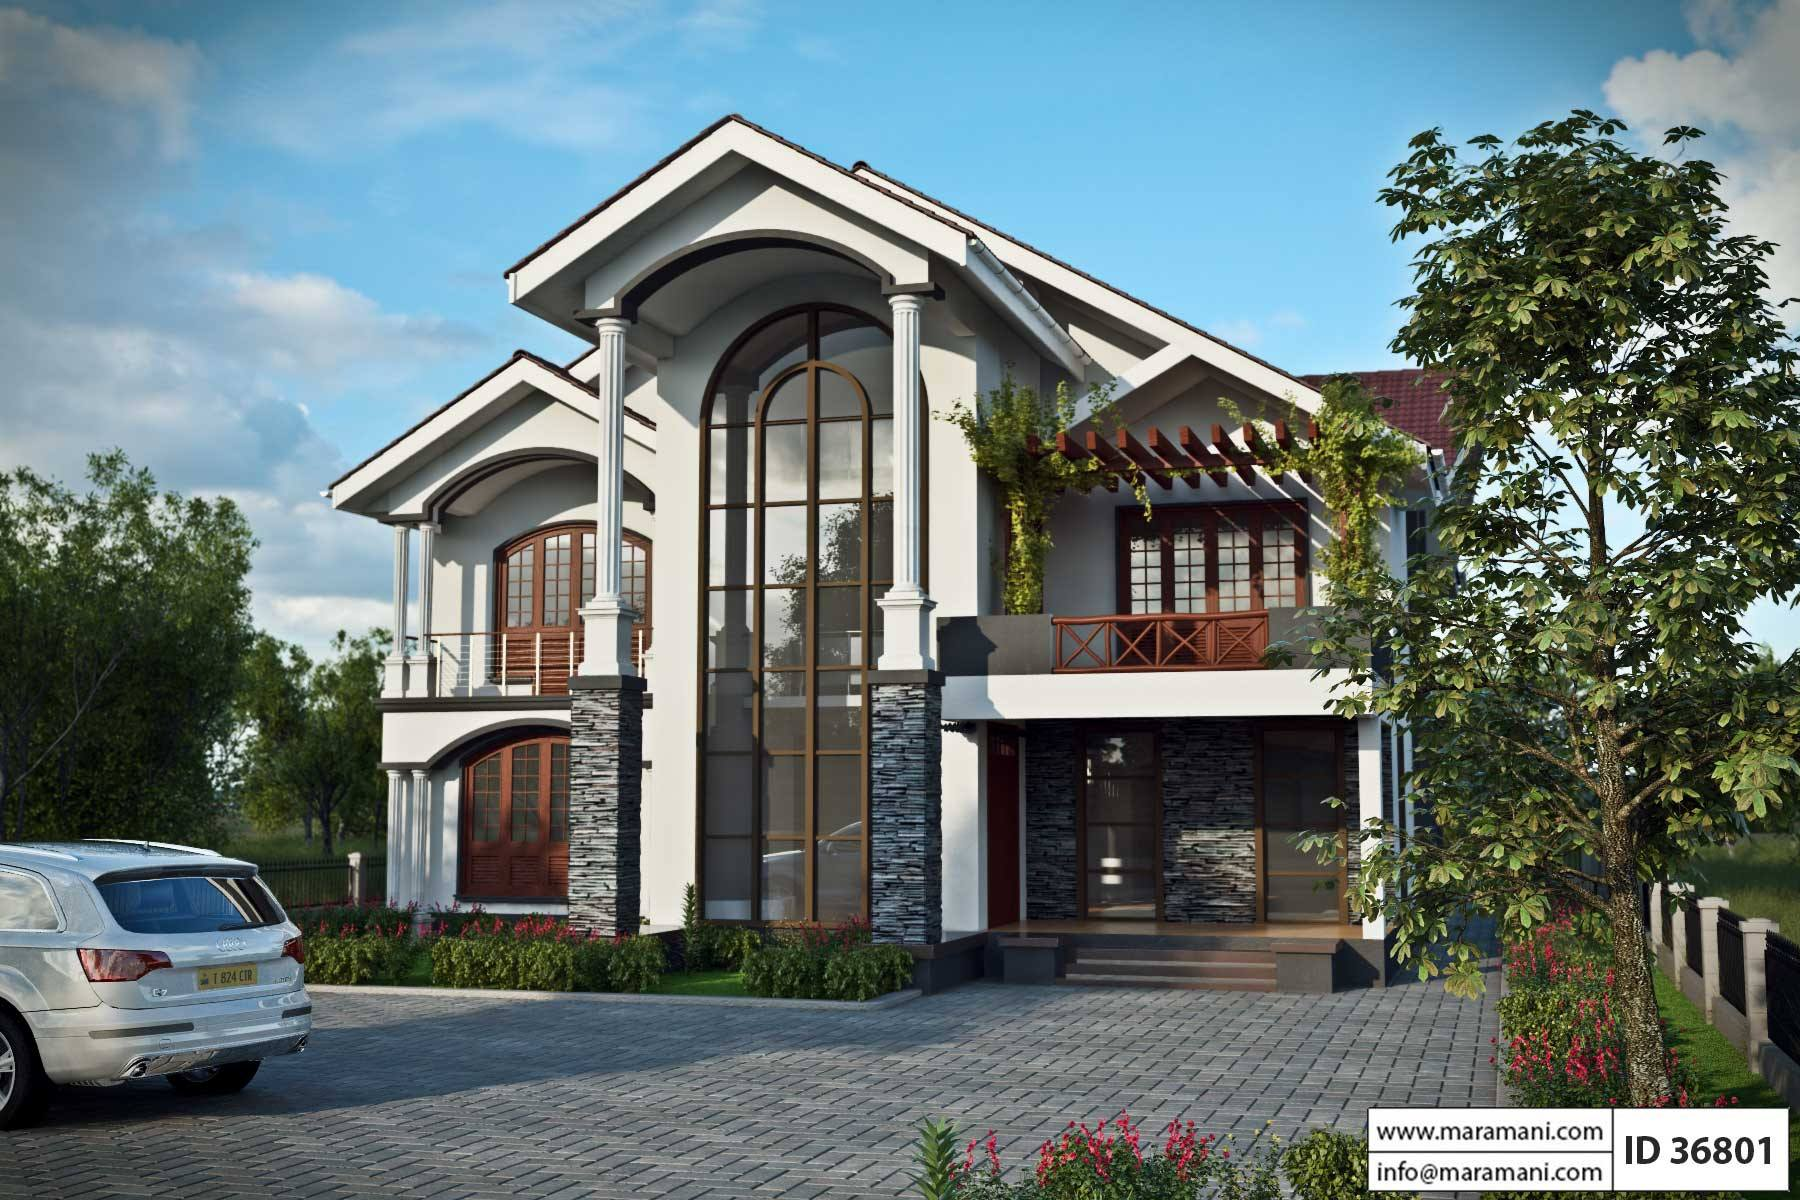 Six bedroom house plan id 36801 house designs by maramani Six bedroom house plans